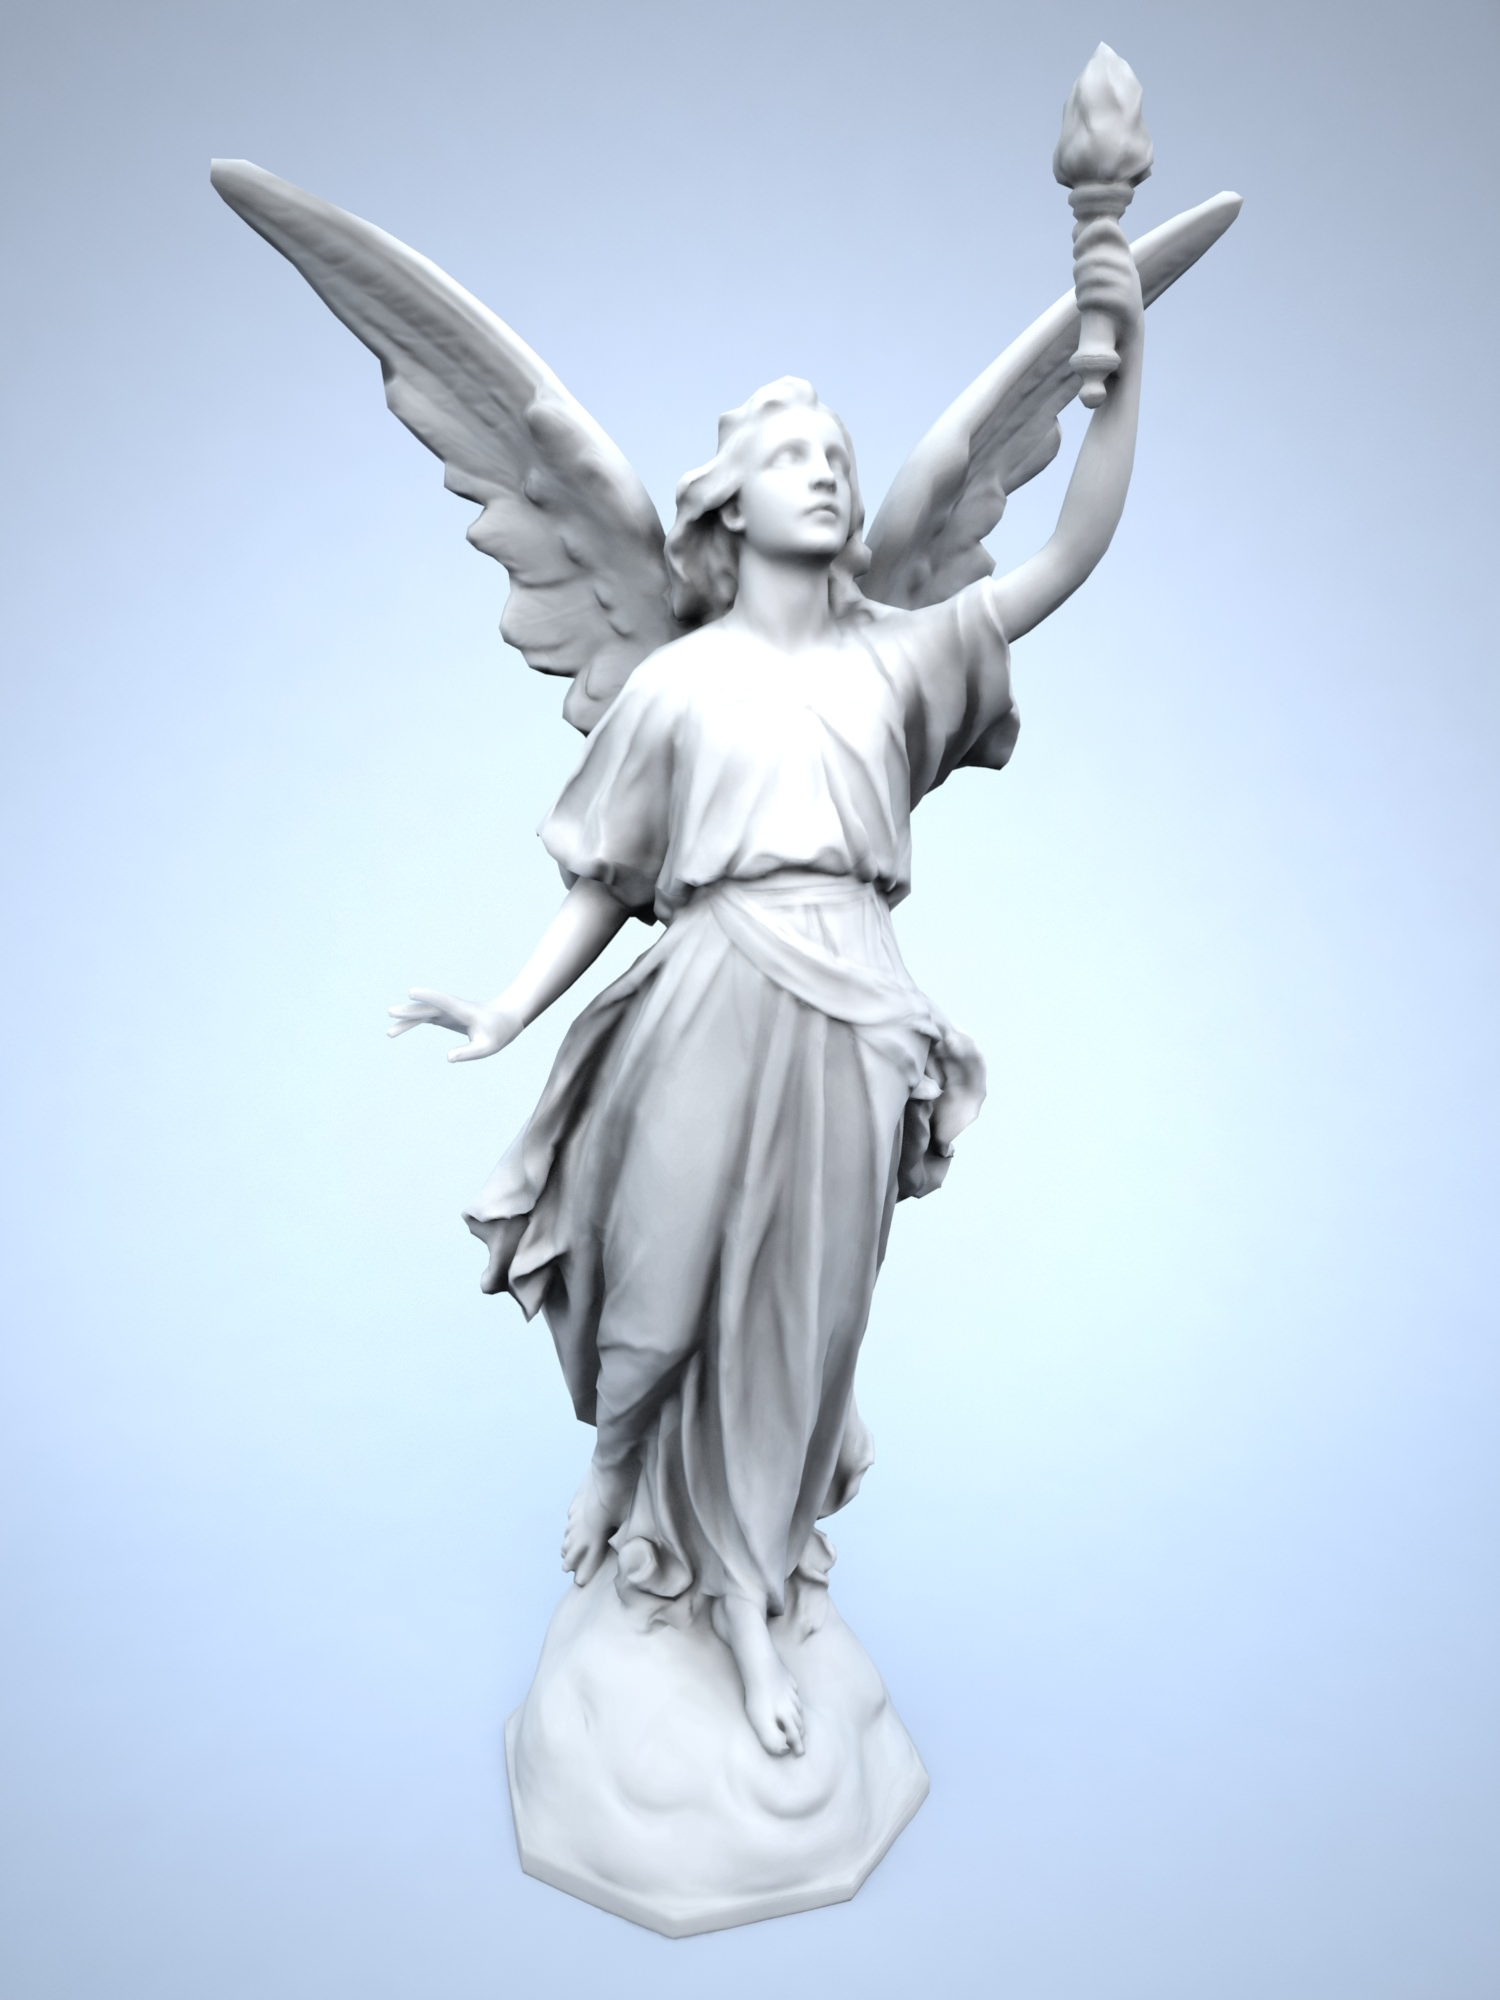 3d Models For Poser And Daz Studio: Lucy Angel Free VR / AR / Low-poly 3D Model 3DS